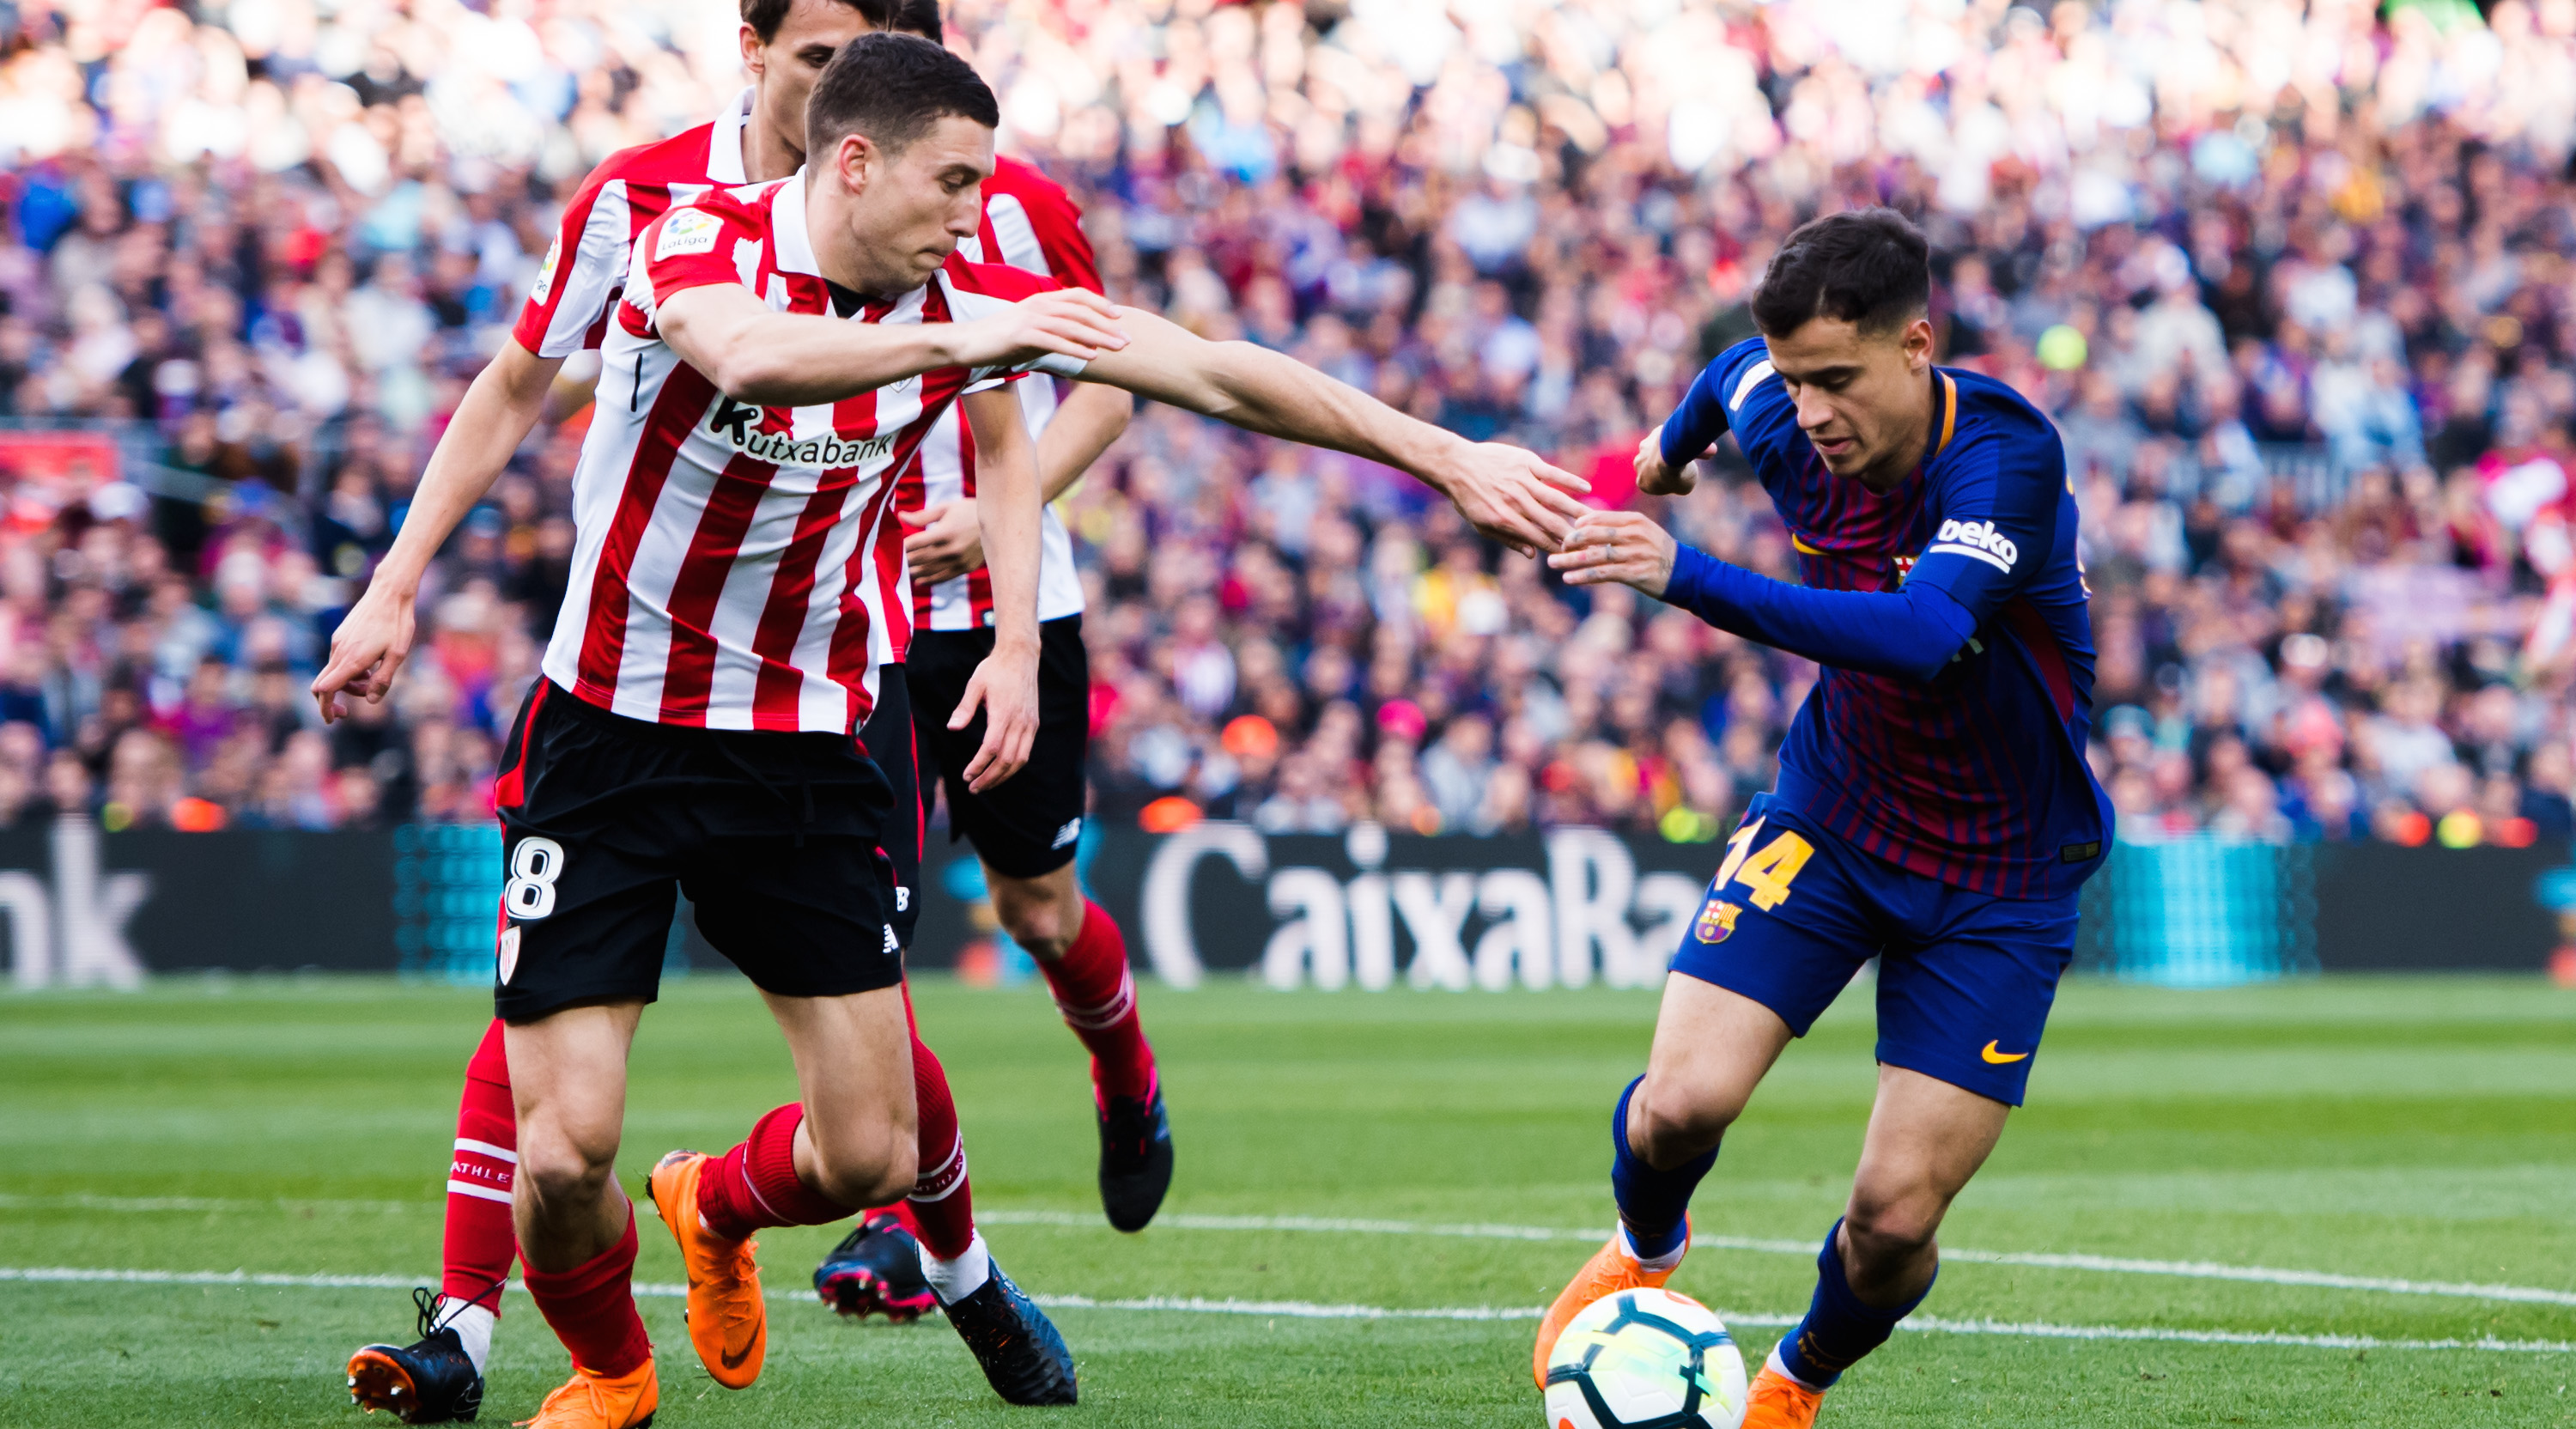 BARCELONA, SPAIN - MARCH 18: Philippe Coutinho of FC Barcelona dribbles Oscar De Marcos of Athletic Club during the La Liga match between Barcelona and Athletic Club at Camp Nou on March 18, 2018 in Barcelona, Spain. (Photo by Alex Caparros/Getty Images)